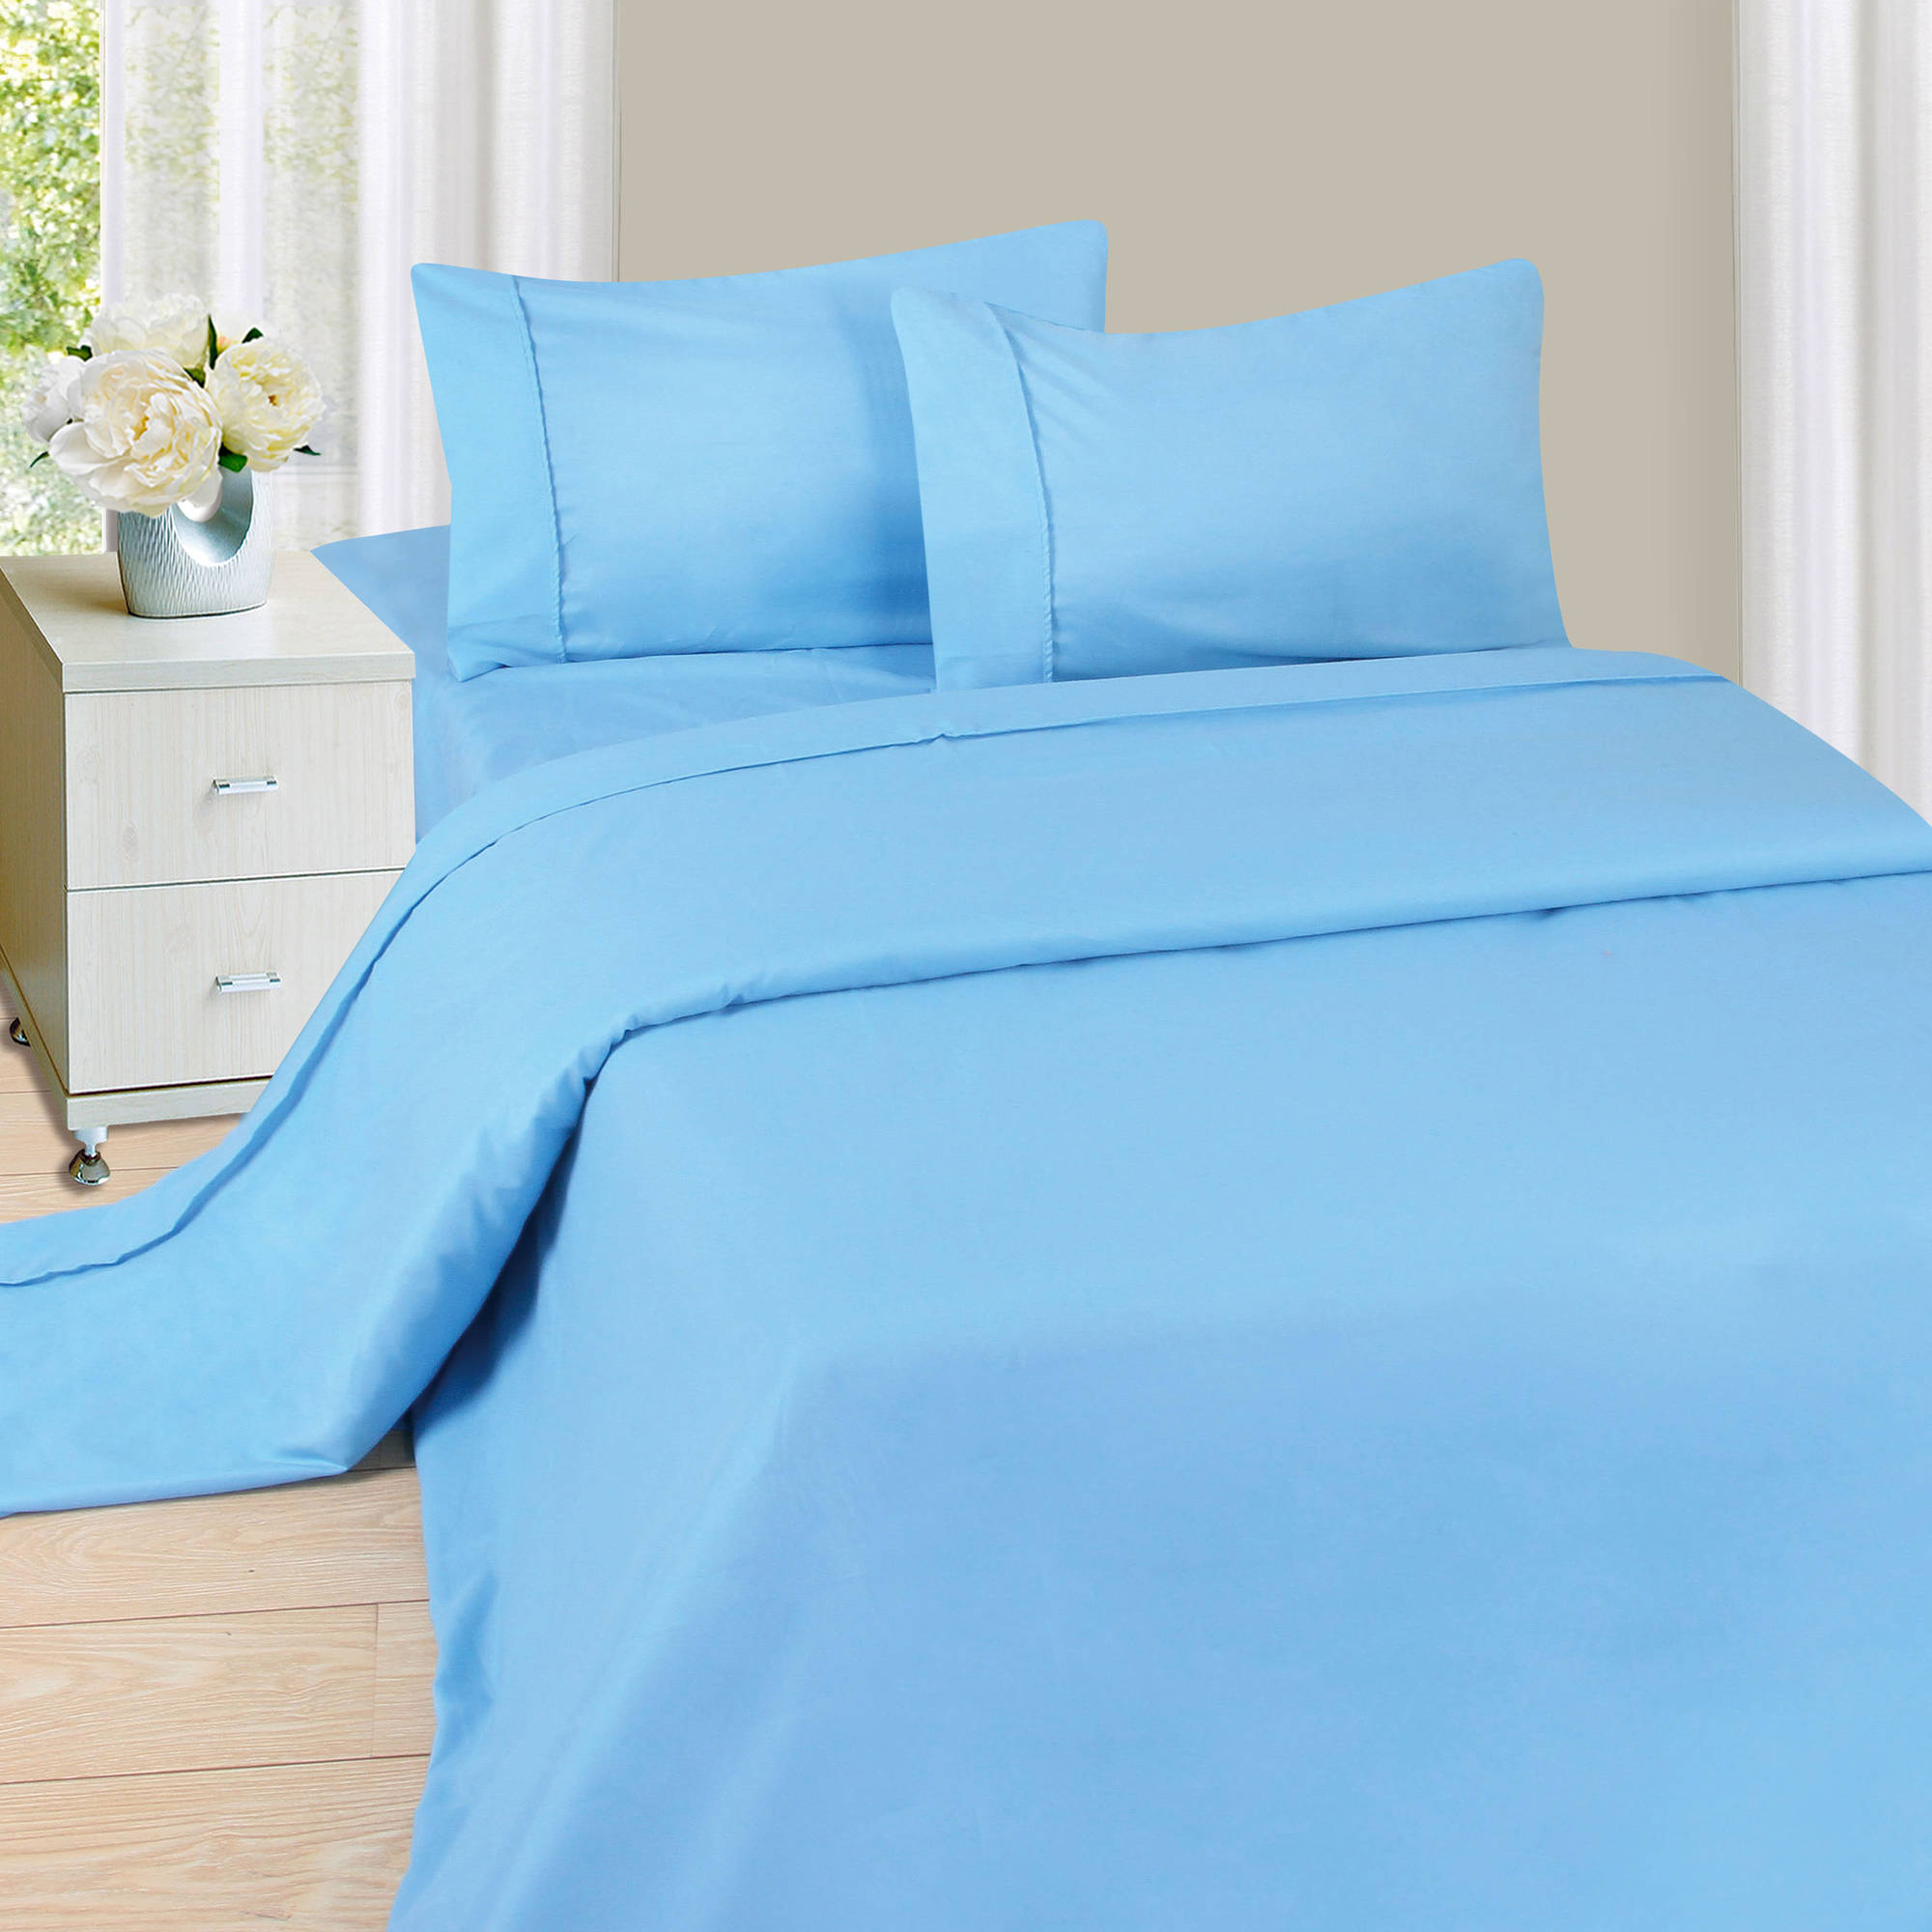 bed pinterest bedroom bedding tiffany black pin blue and our teal